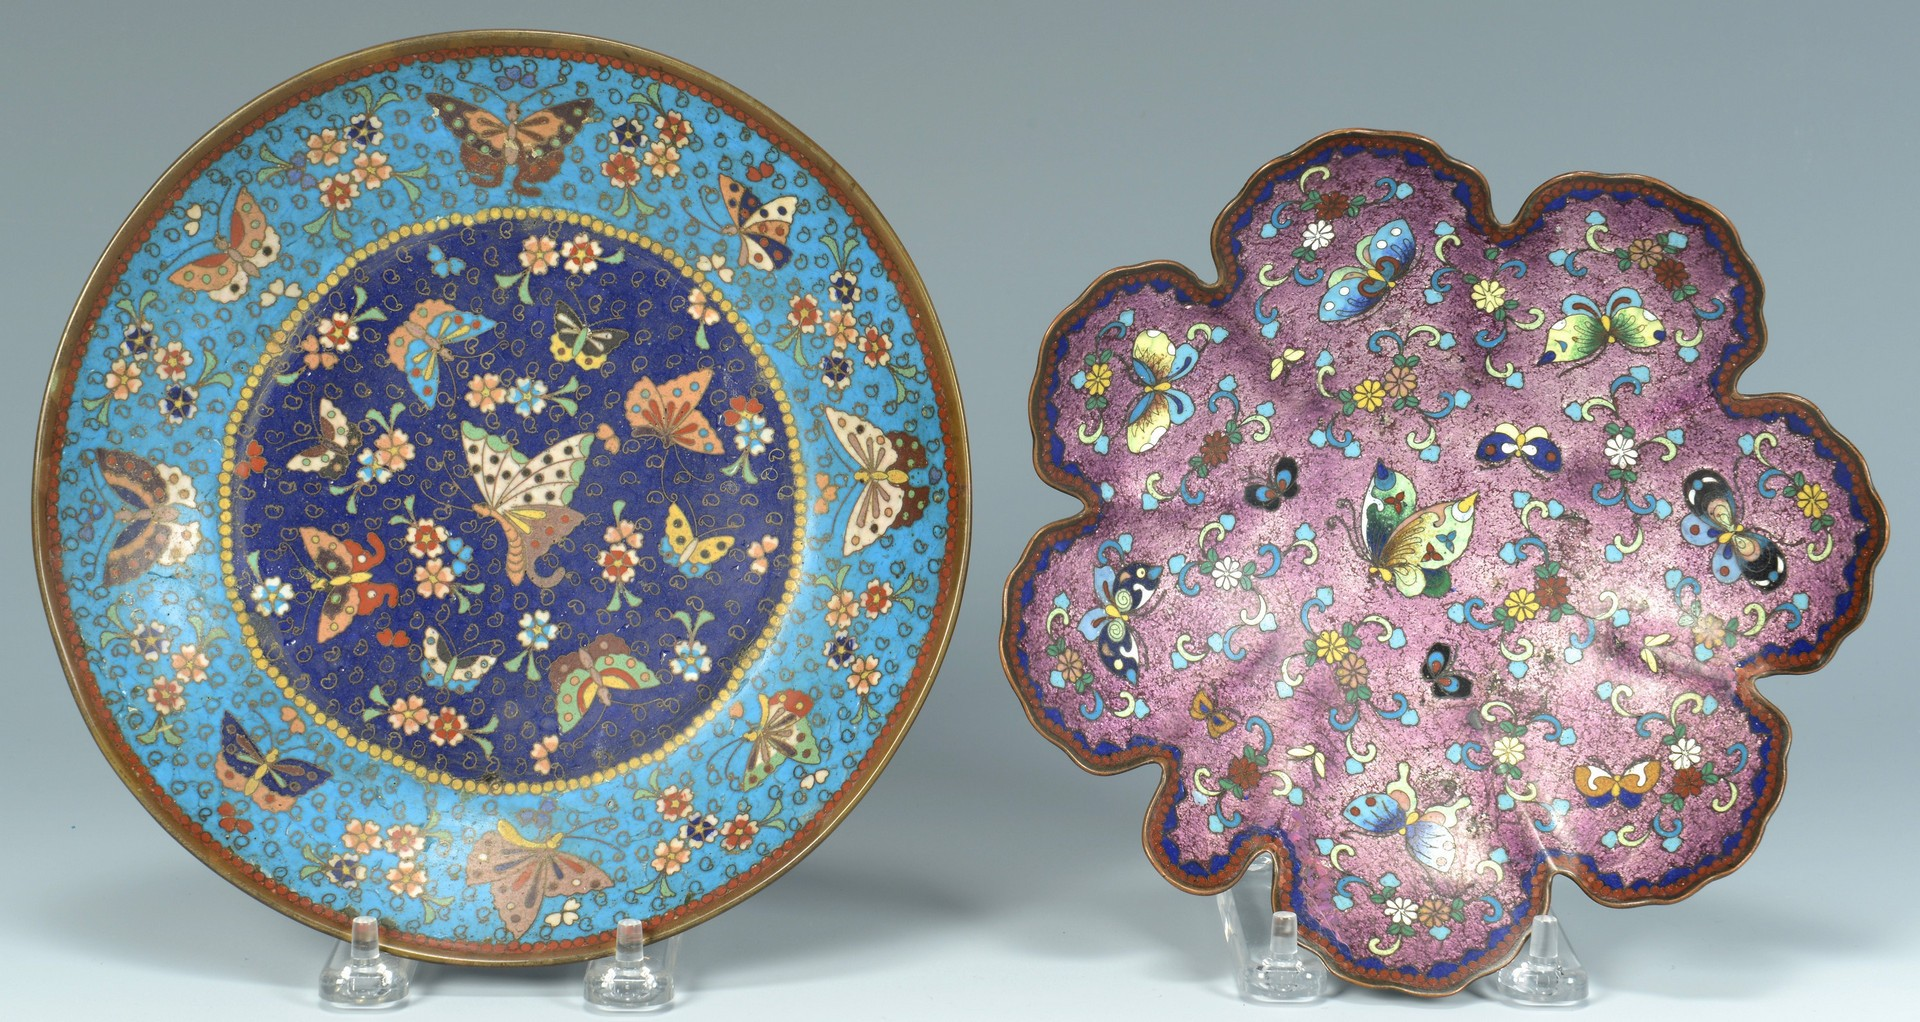 Lot 3383142: 11 pcs Assorted Cloisonne